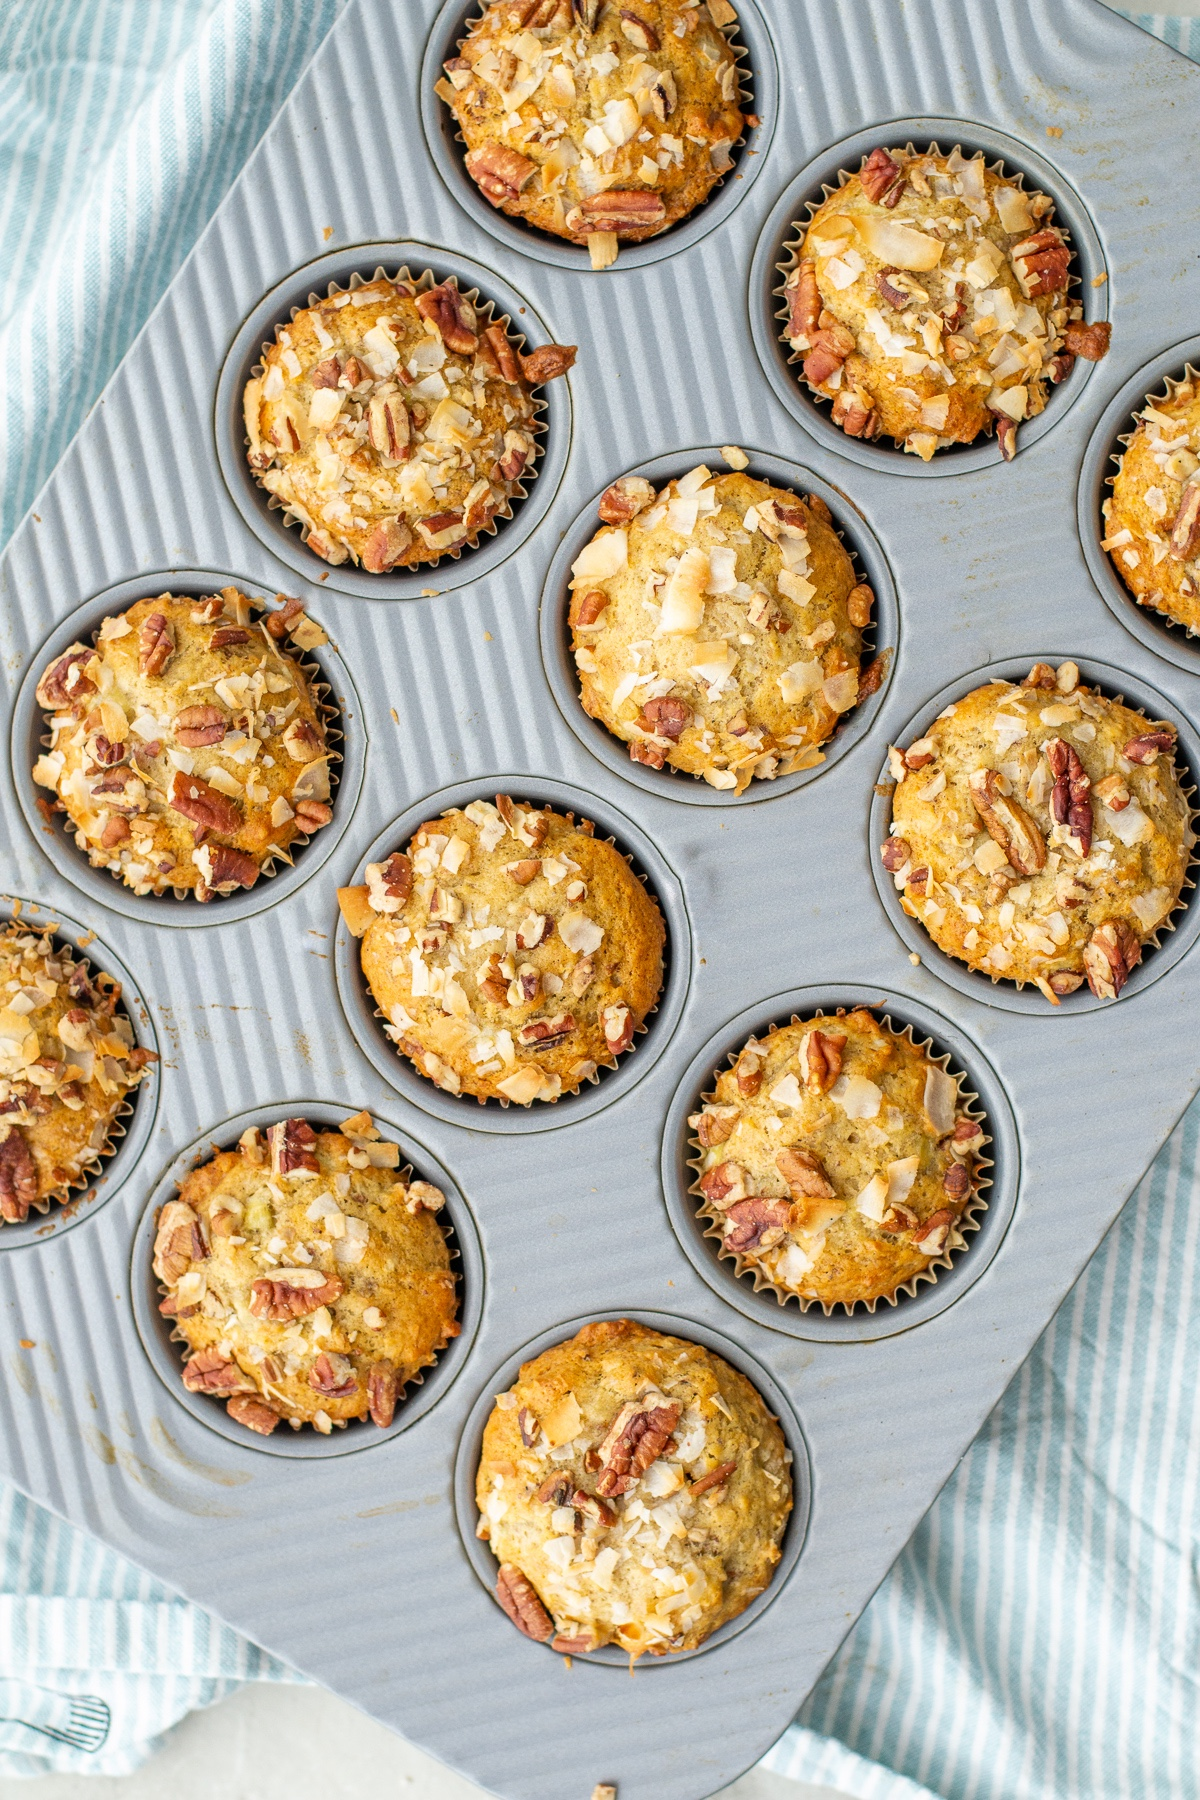 How the muffins will look after baking